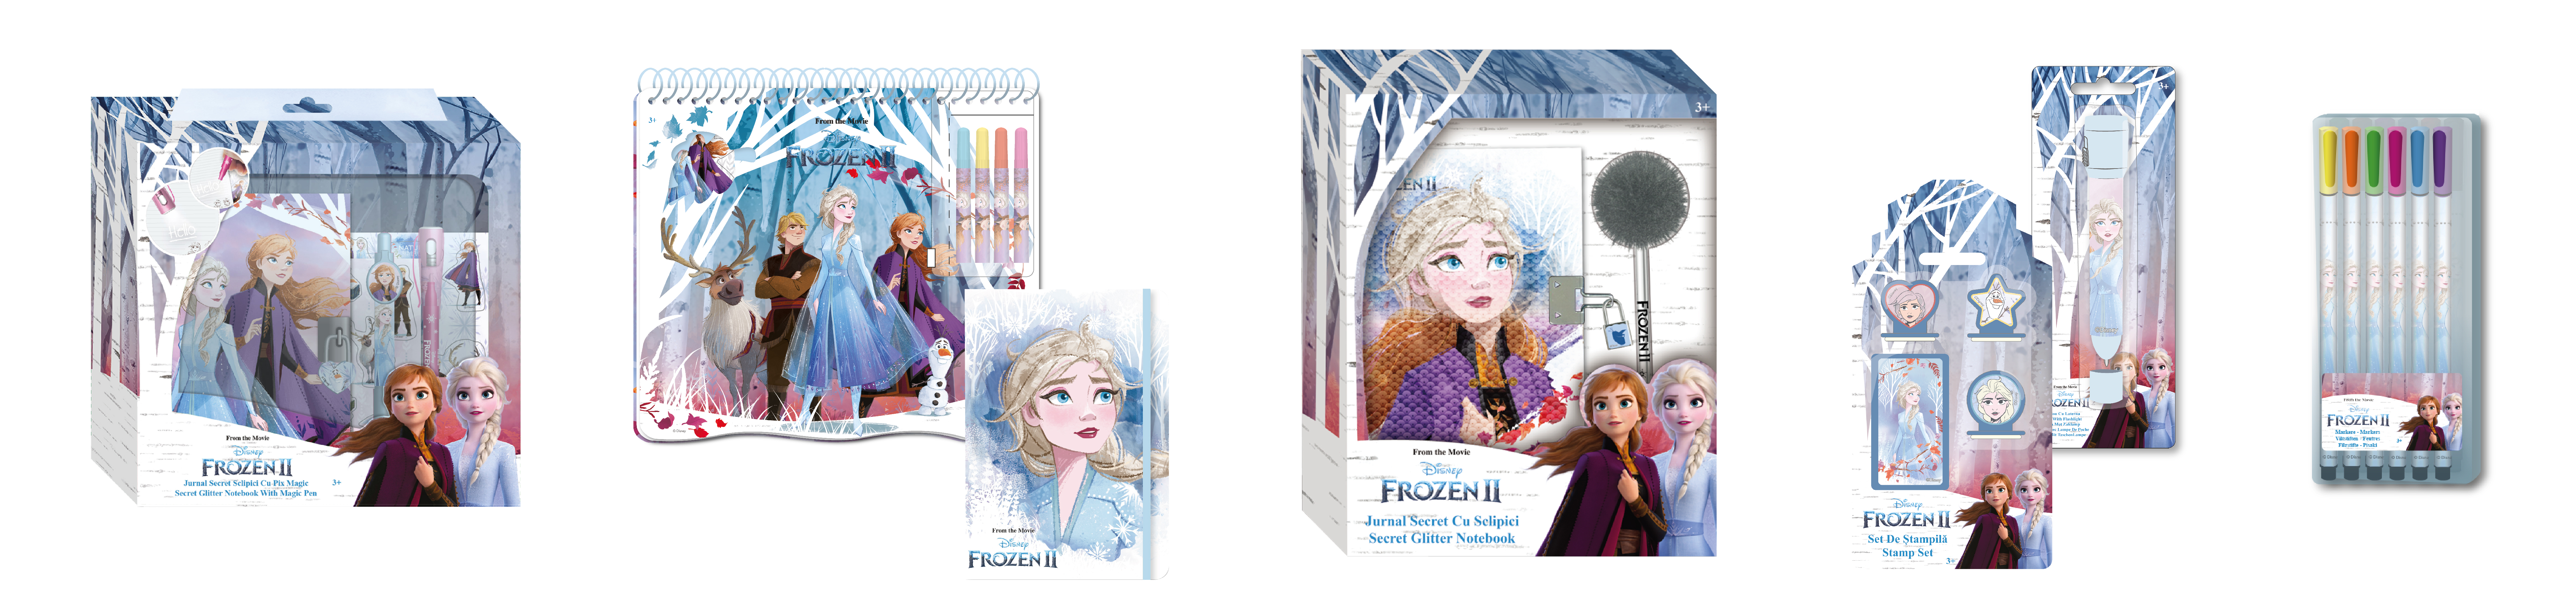 Coming soon: Frozen II !